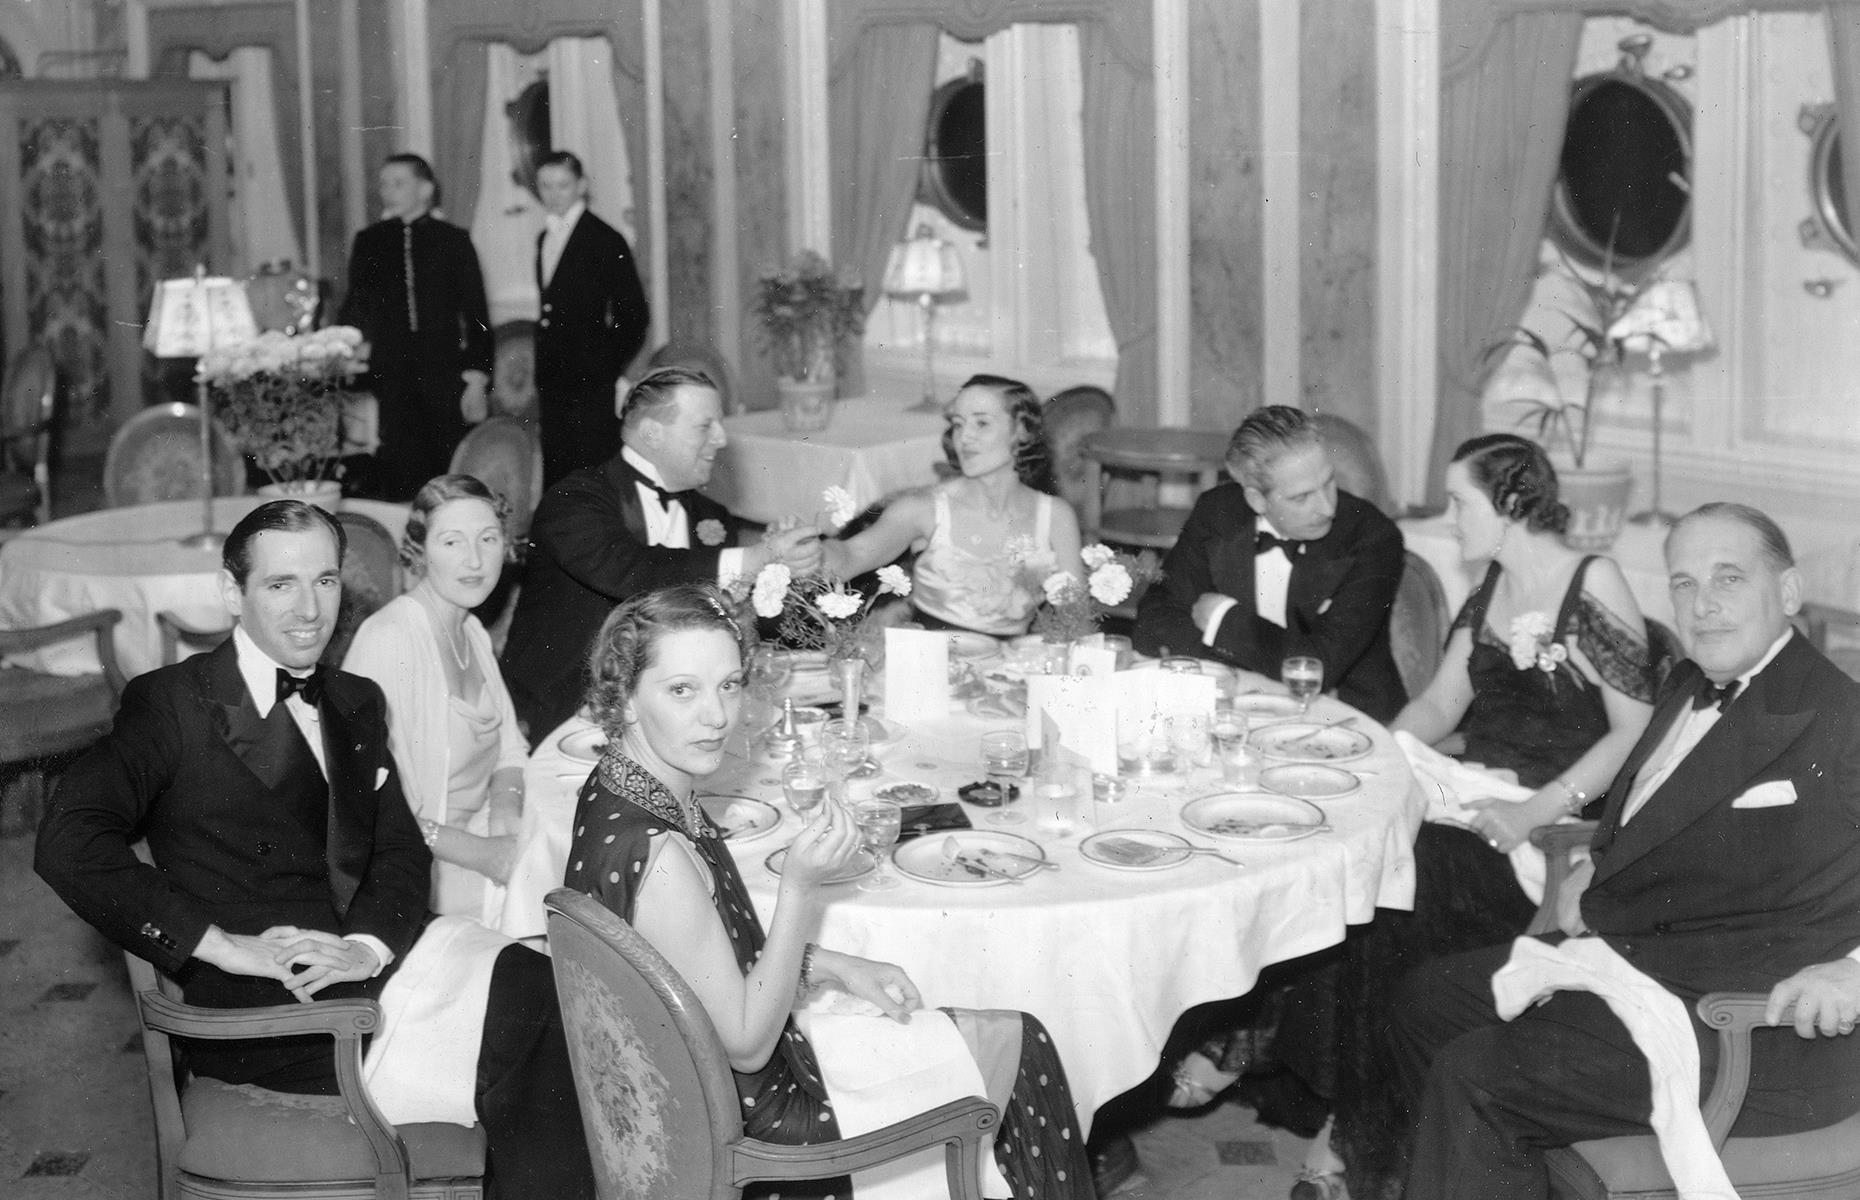 Slide 18 of 35: Cruise liners competed to win the Blue Riband title for the shortest Atlantic crossing time through the 1930s, and the RMS Queen Mary forged her way from Southampton to New York in just five days. Here a star-studded group, including performer Gertrude Lawrence, dine on the ship in early 1939.